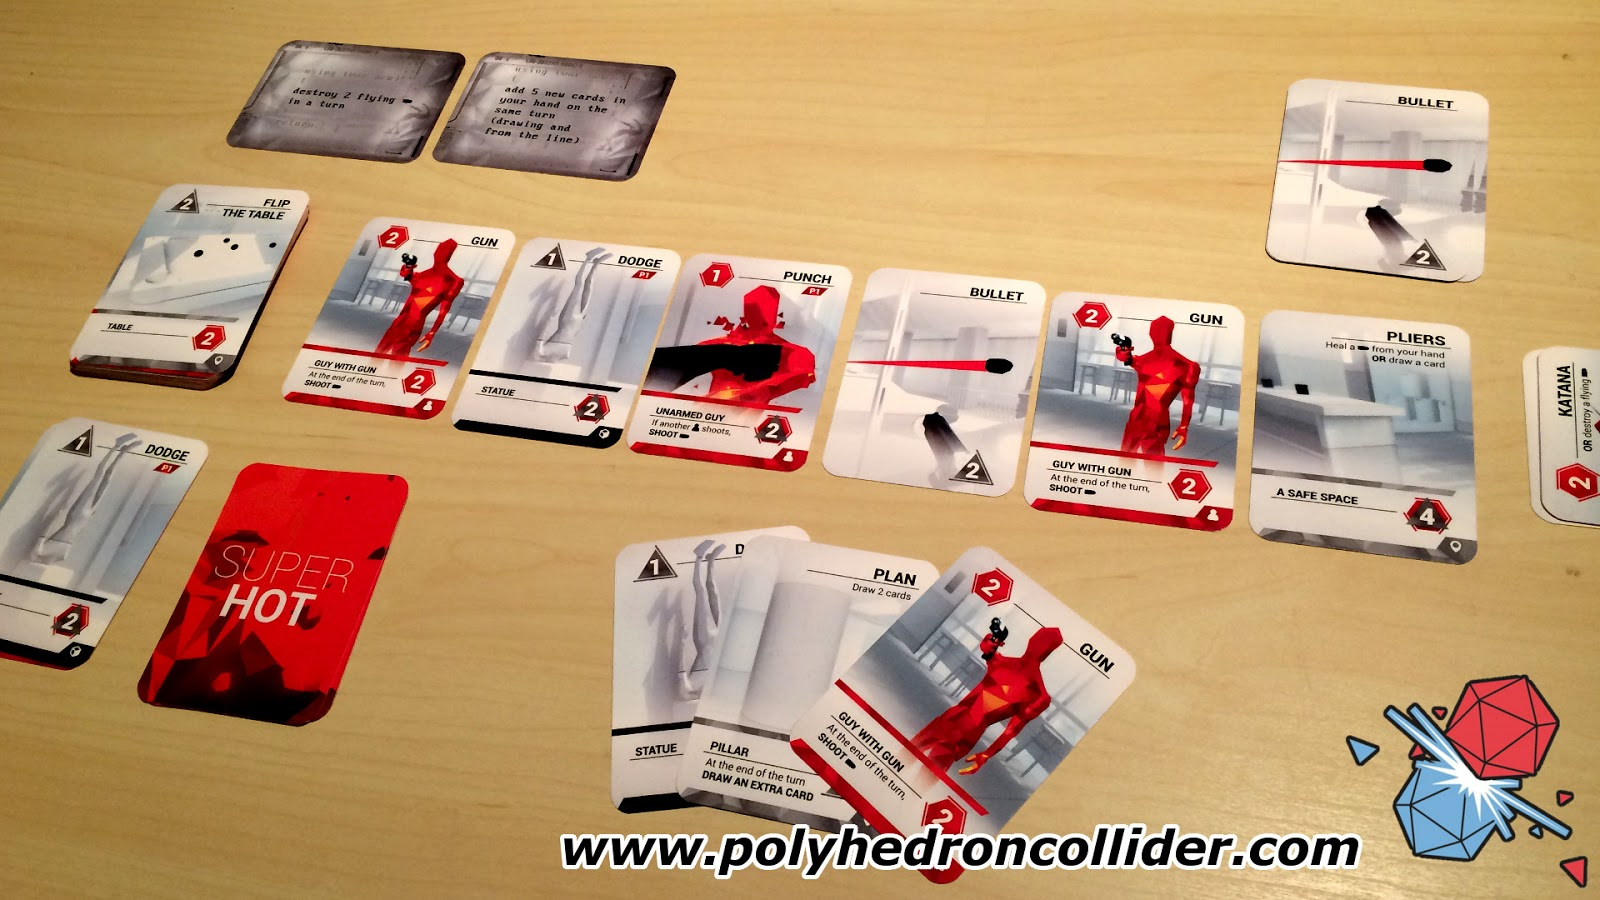 Superhot the card game card set up